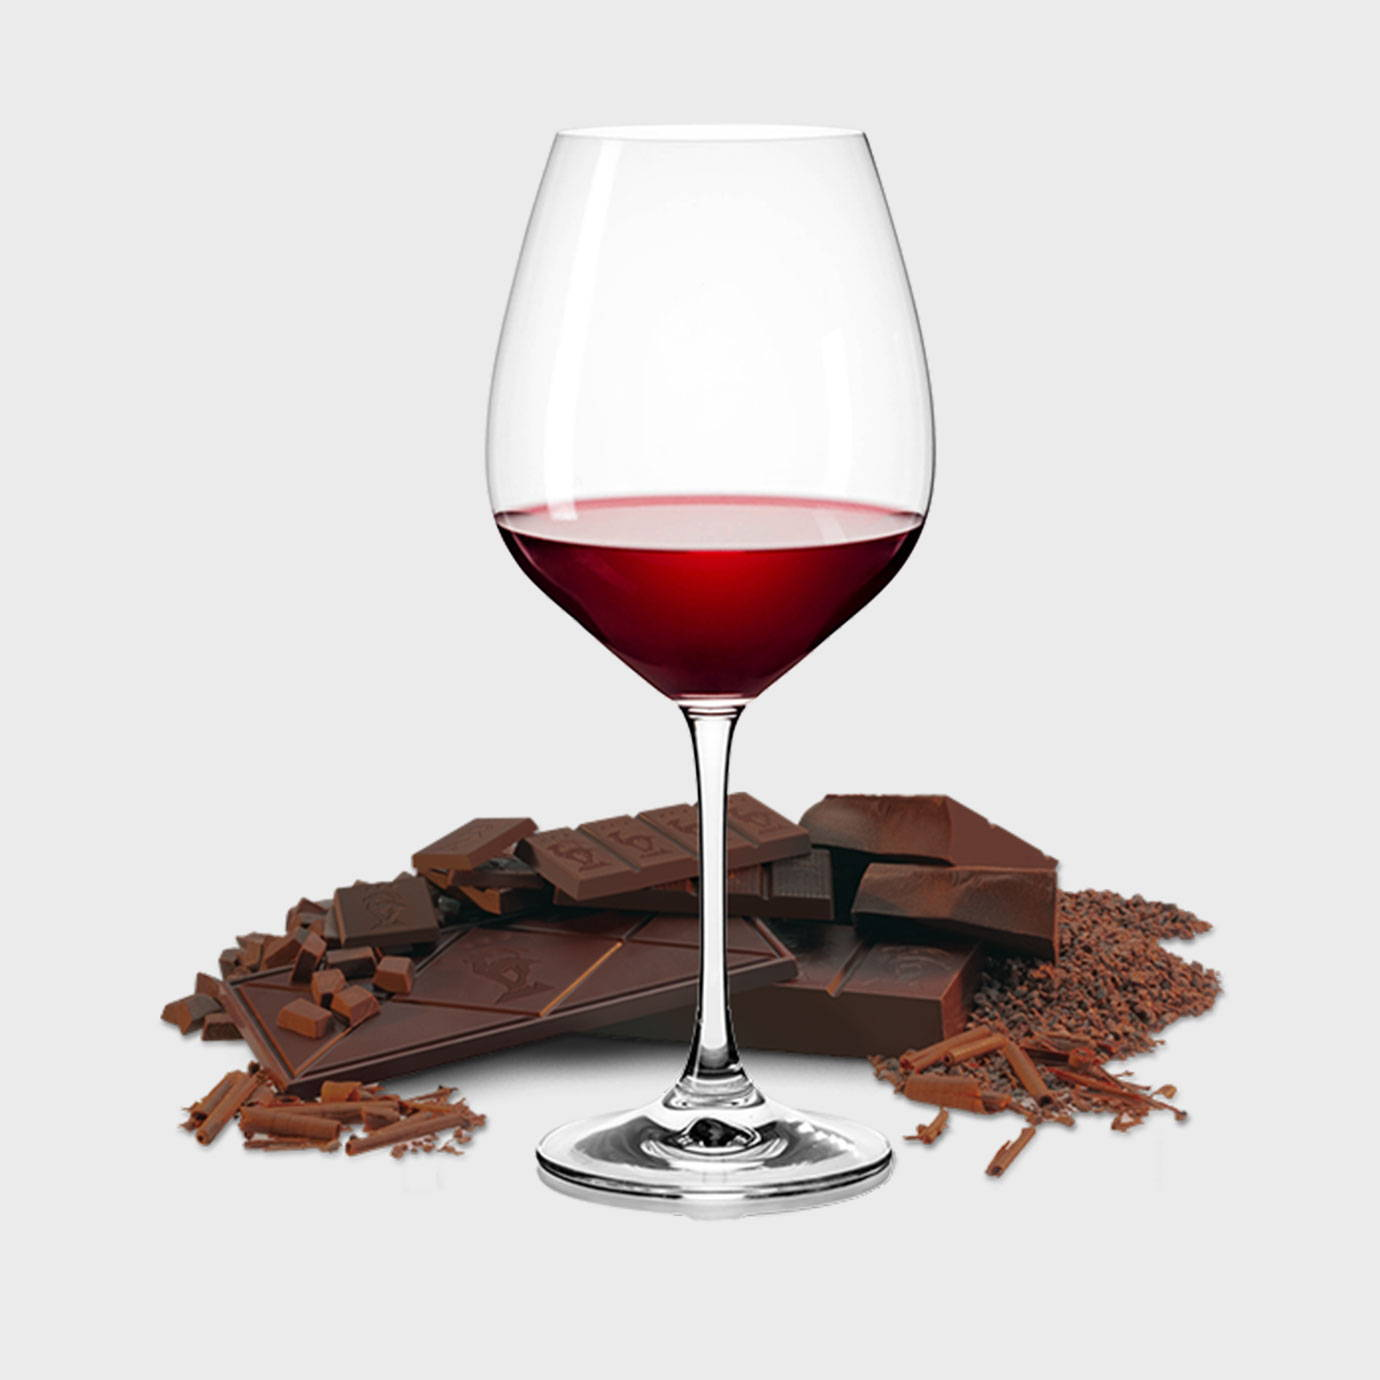 Glass of red wine and chocolate image